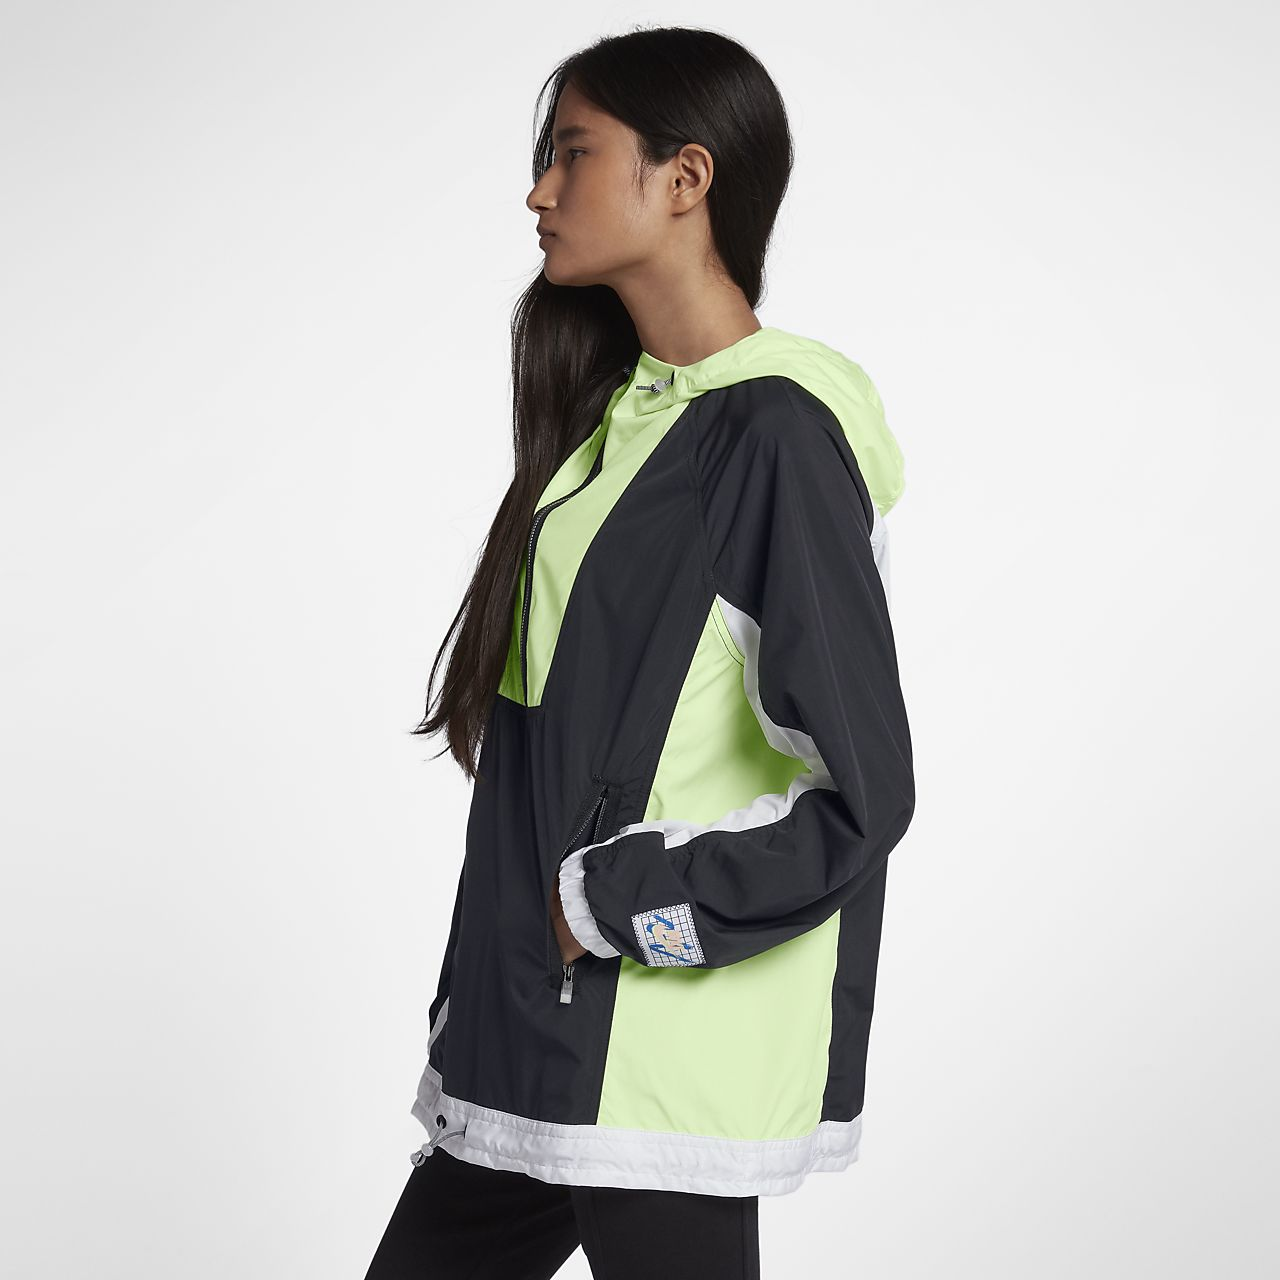 220232bfc88c Low Resolution Nike Sportswear Archive Women s Jacket Nike Sportswear Archive  Women s Jacket